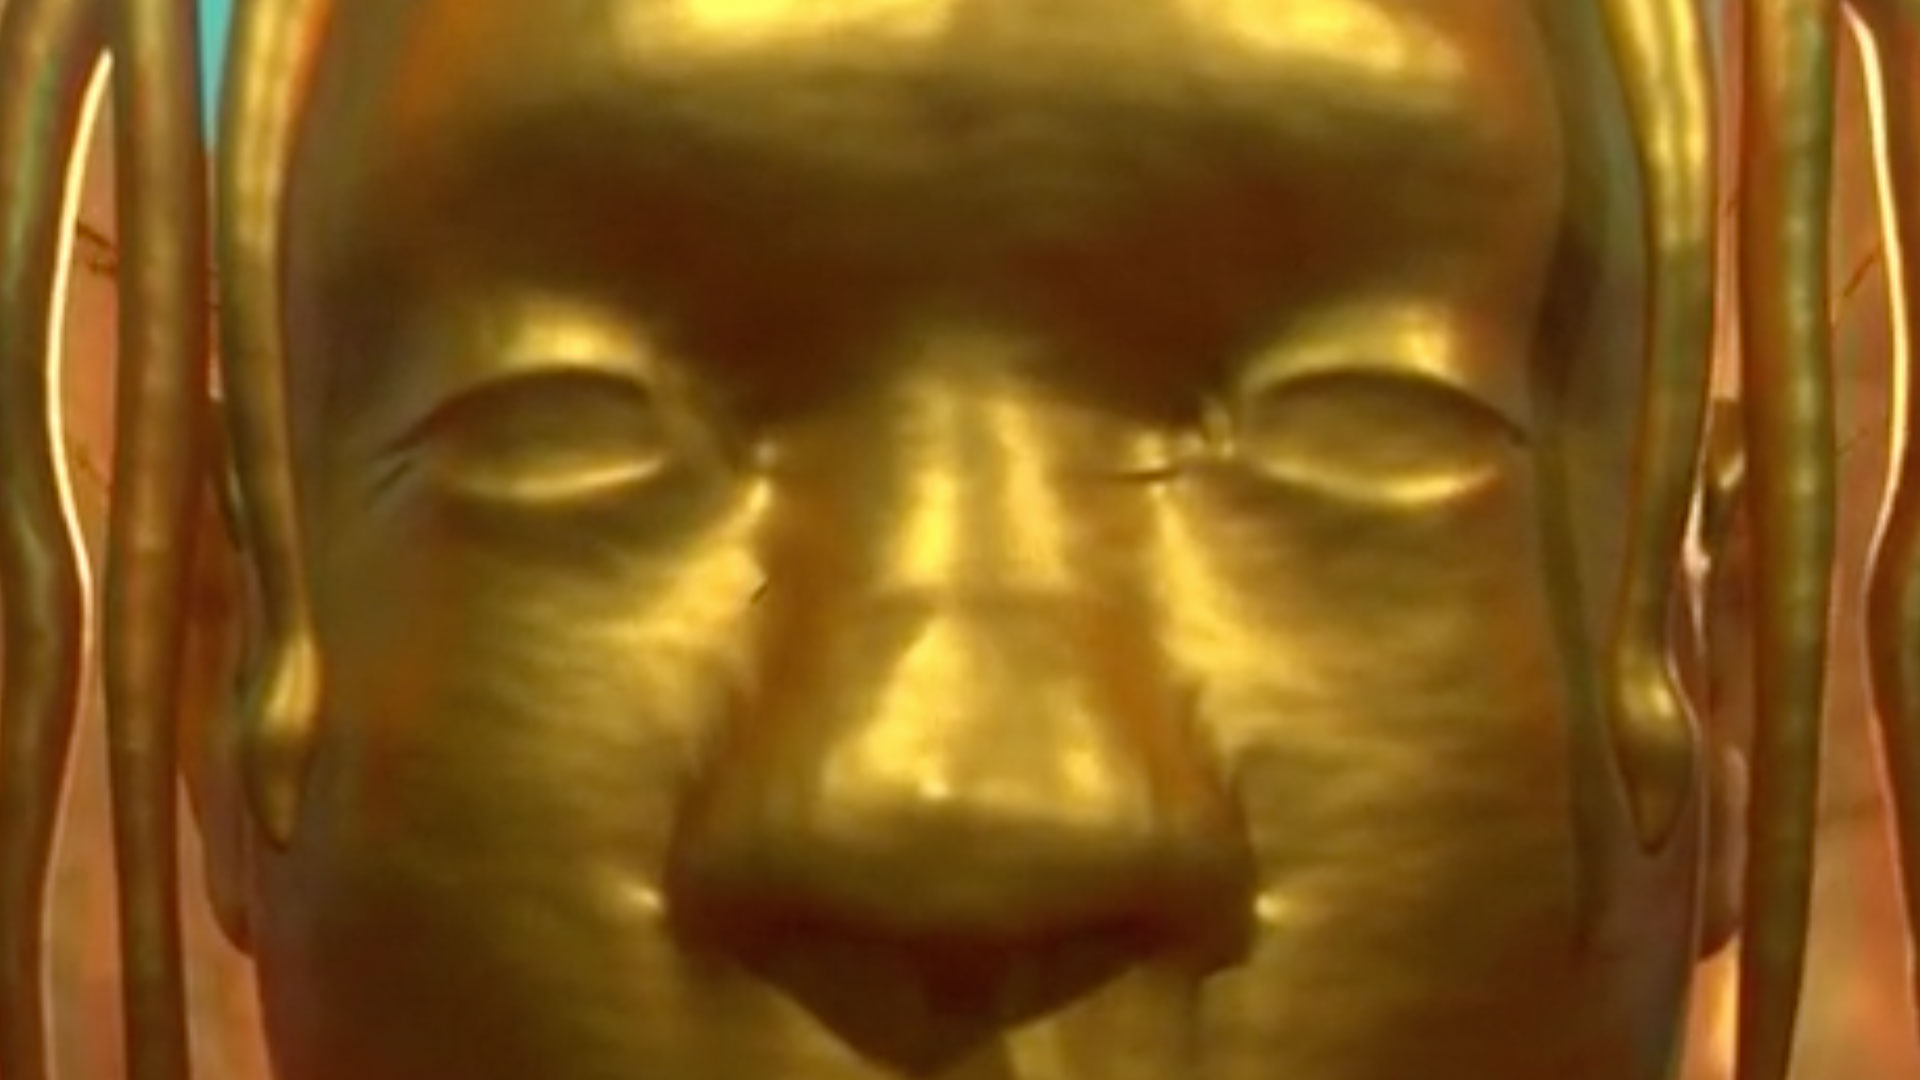 Close up of golden statue's eyes.